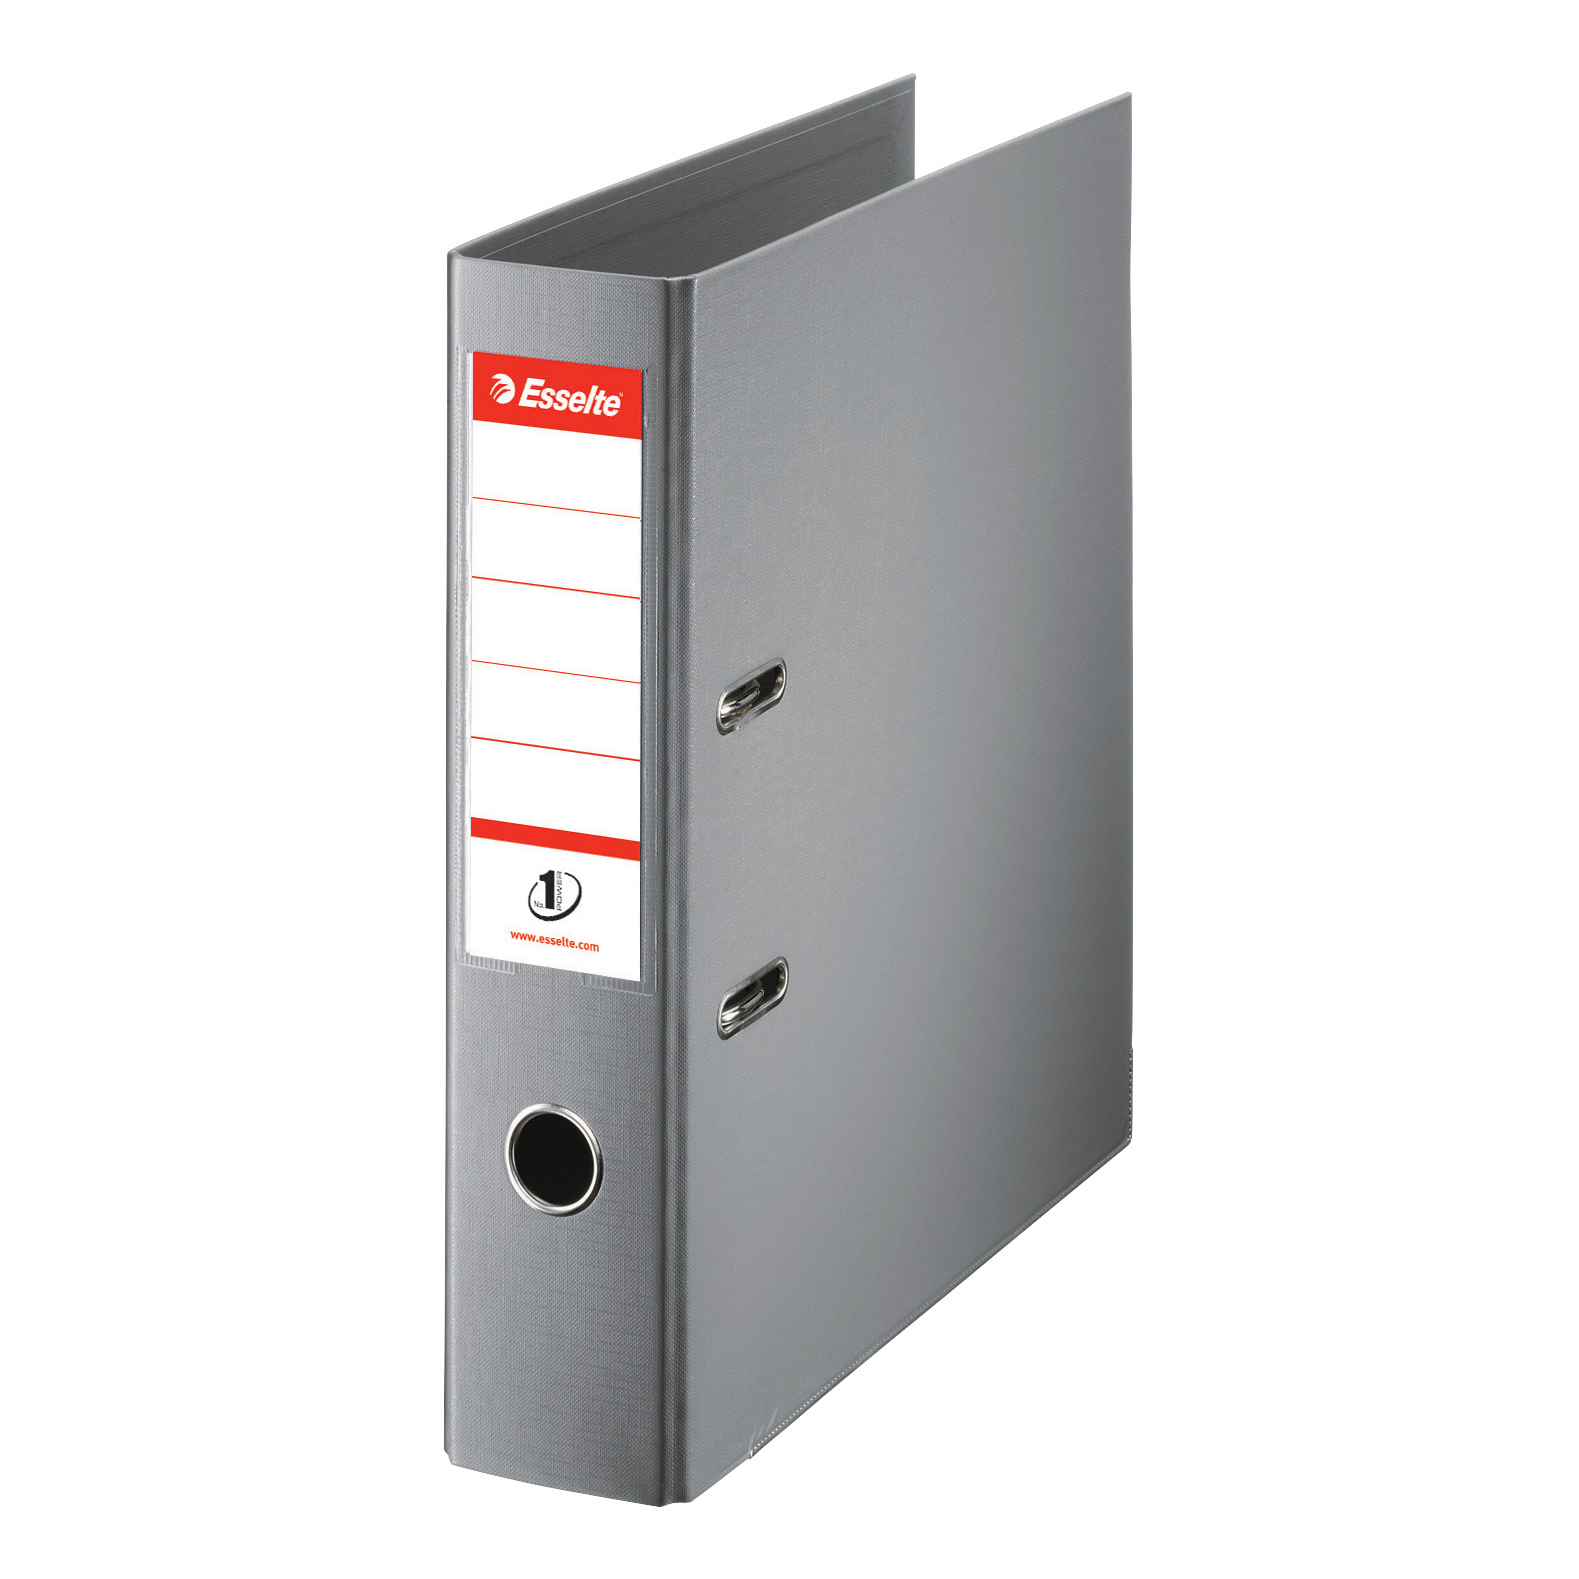 Esselte FSC No. 1 Power Lever Arch File PP Slotted 75mm Spine A4 Grey Ref 811380 [Pack 10]